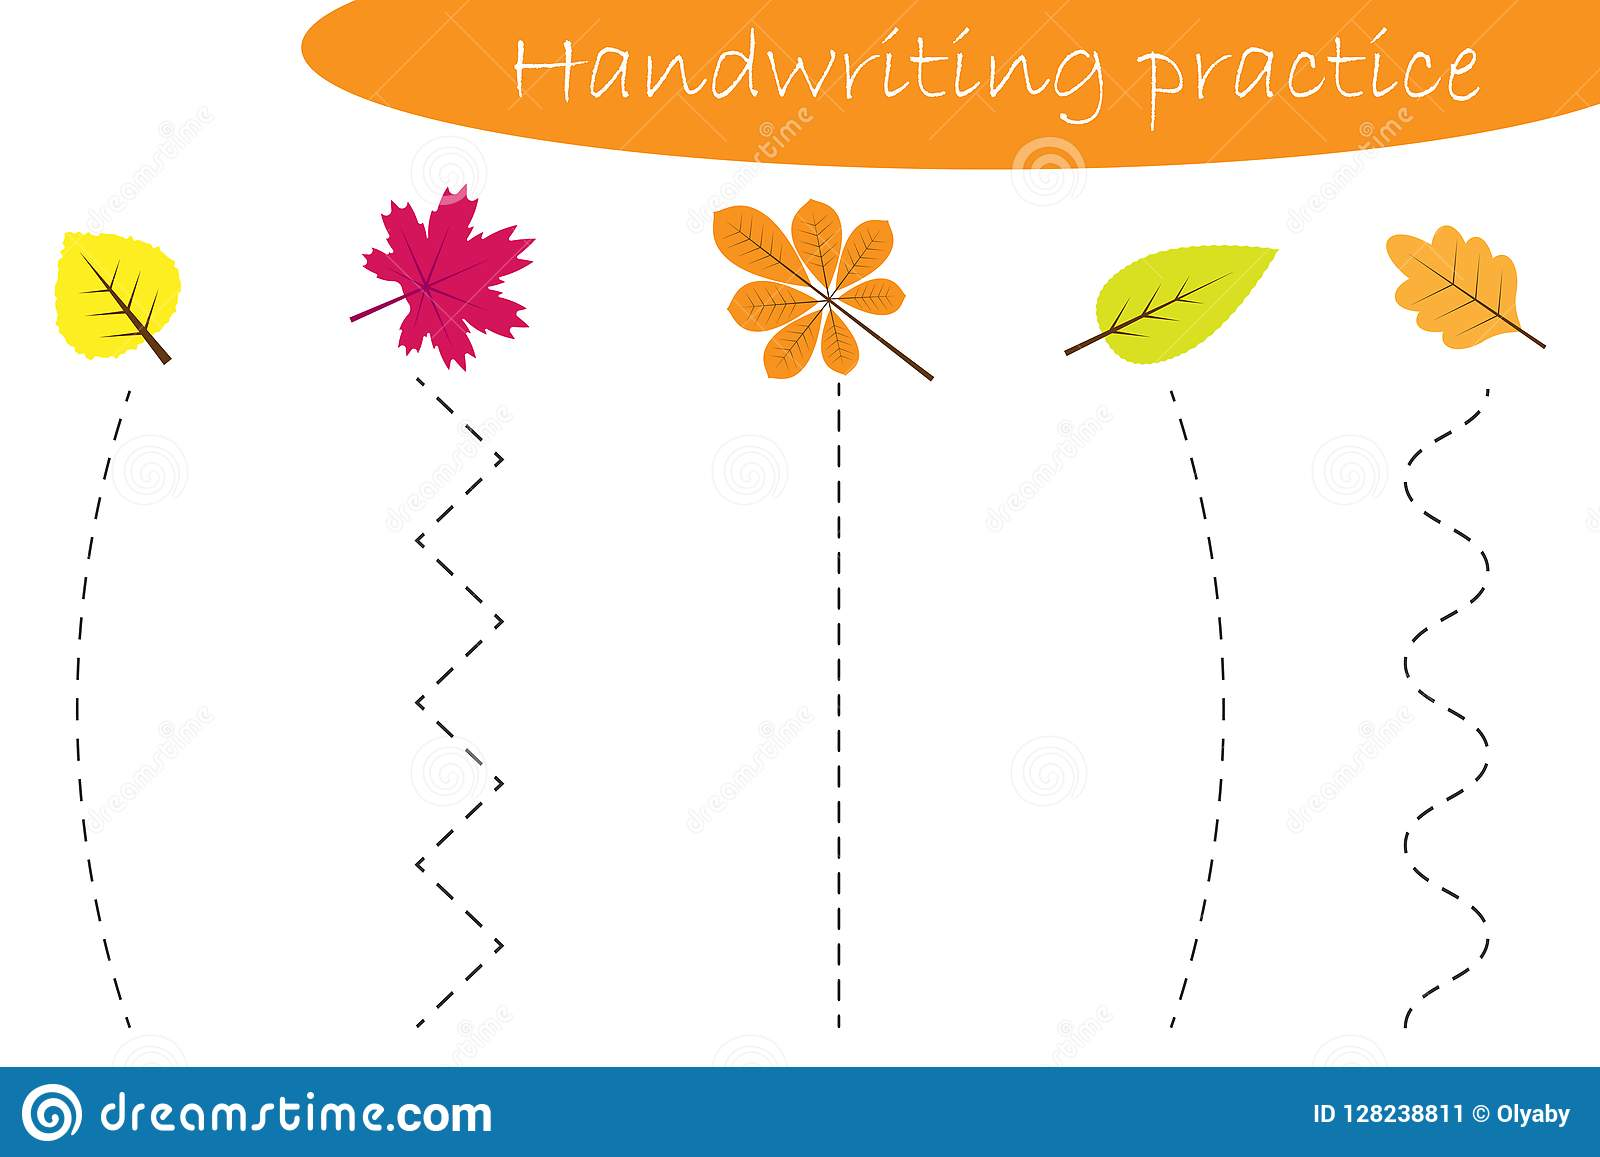 Handwriting Practice Sheet Autumn Fall Different Colorful Leaves Kids Preschool Activity